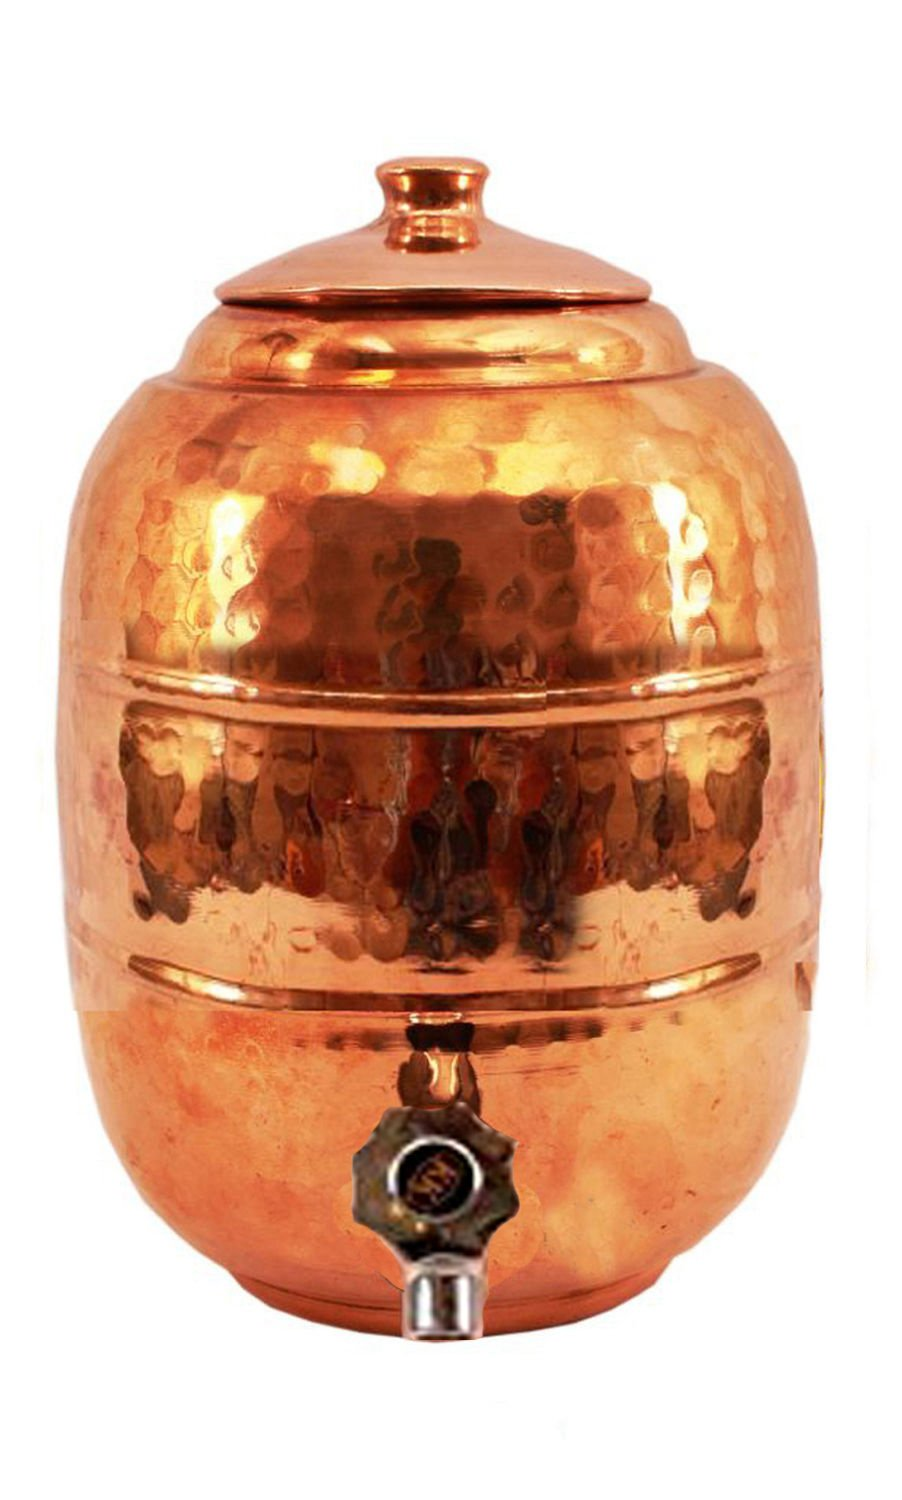 Rastogi Handicrafts Hammered Pure Copper 6.5 ltr. Water Pot Storage Tank - Tumble With Tap Kitchen Home Garden by Rastogi Handicrafts (Image #2)